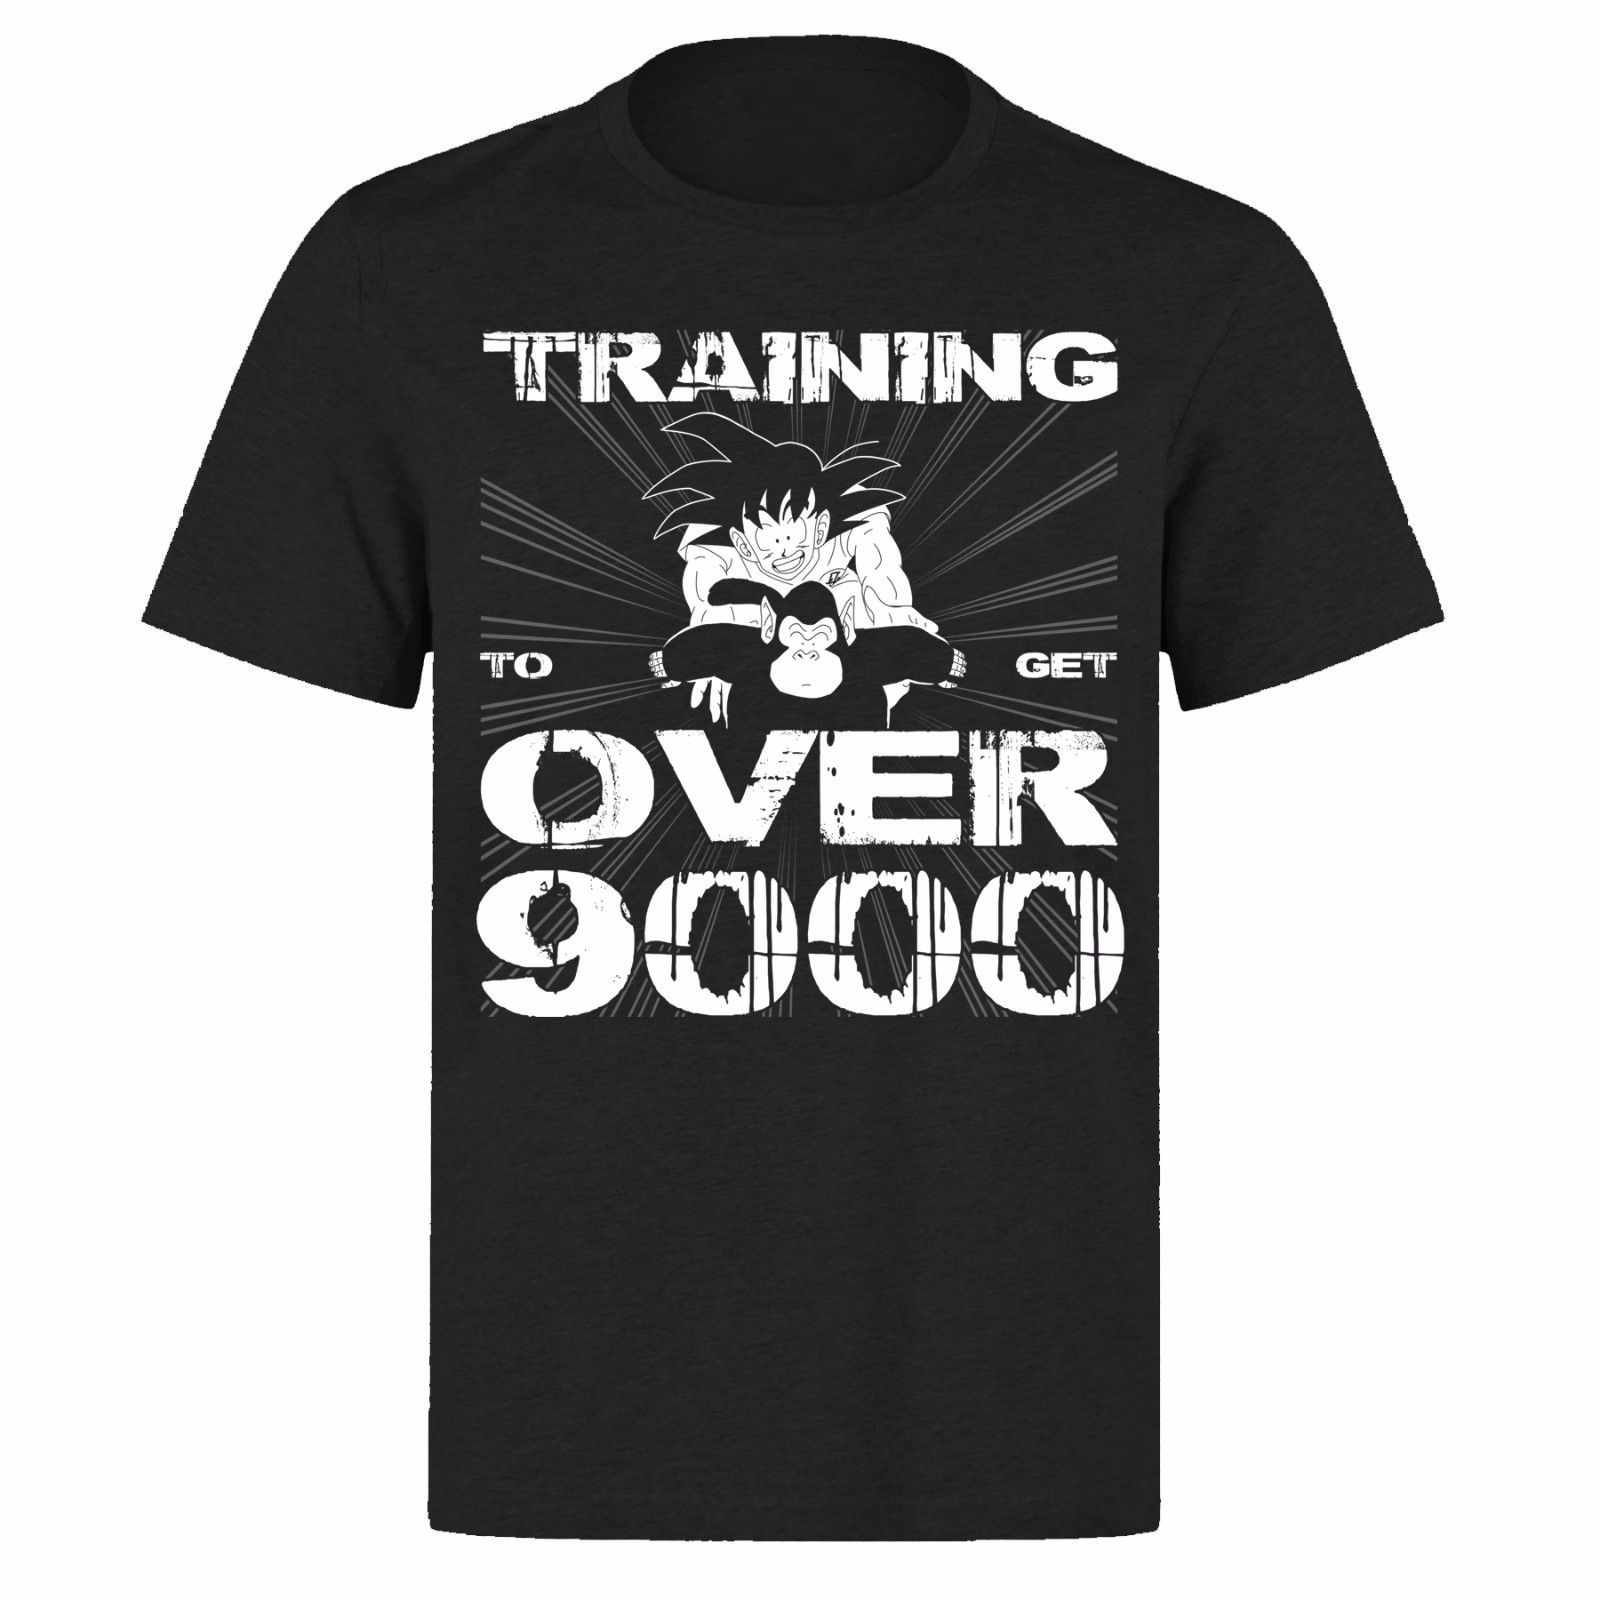 GOKU TRAININGer TO GET OVER 9000 UNISEX BLACK CLASSIC GAMERS PH11 T-SHIRT Funny Clothing Casual Short Sleeve T Shirts